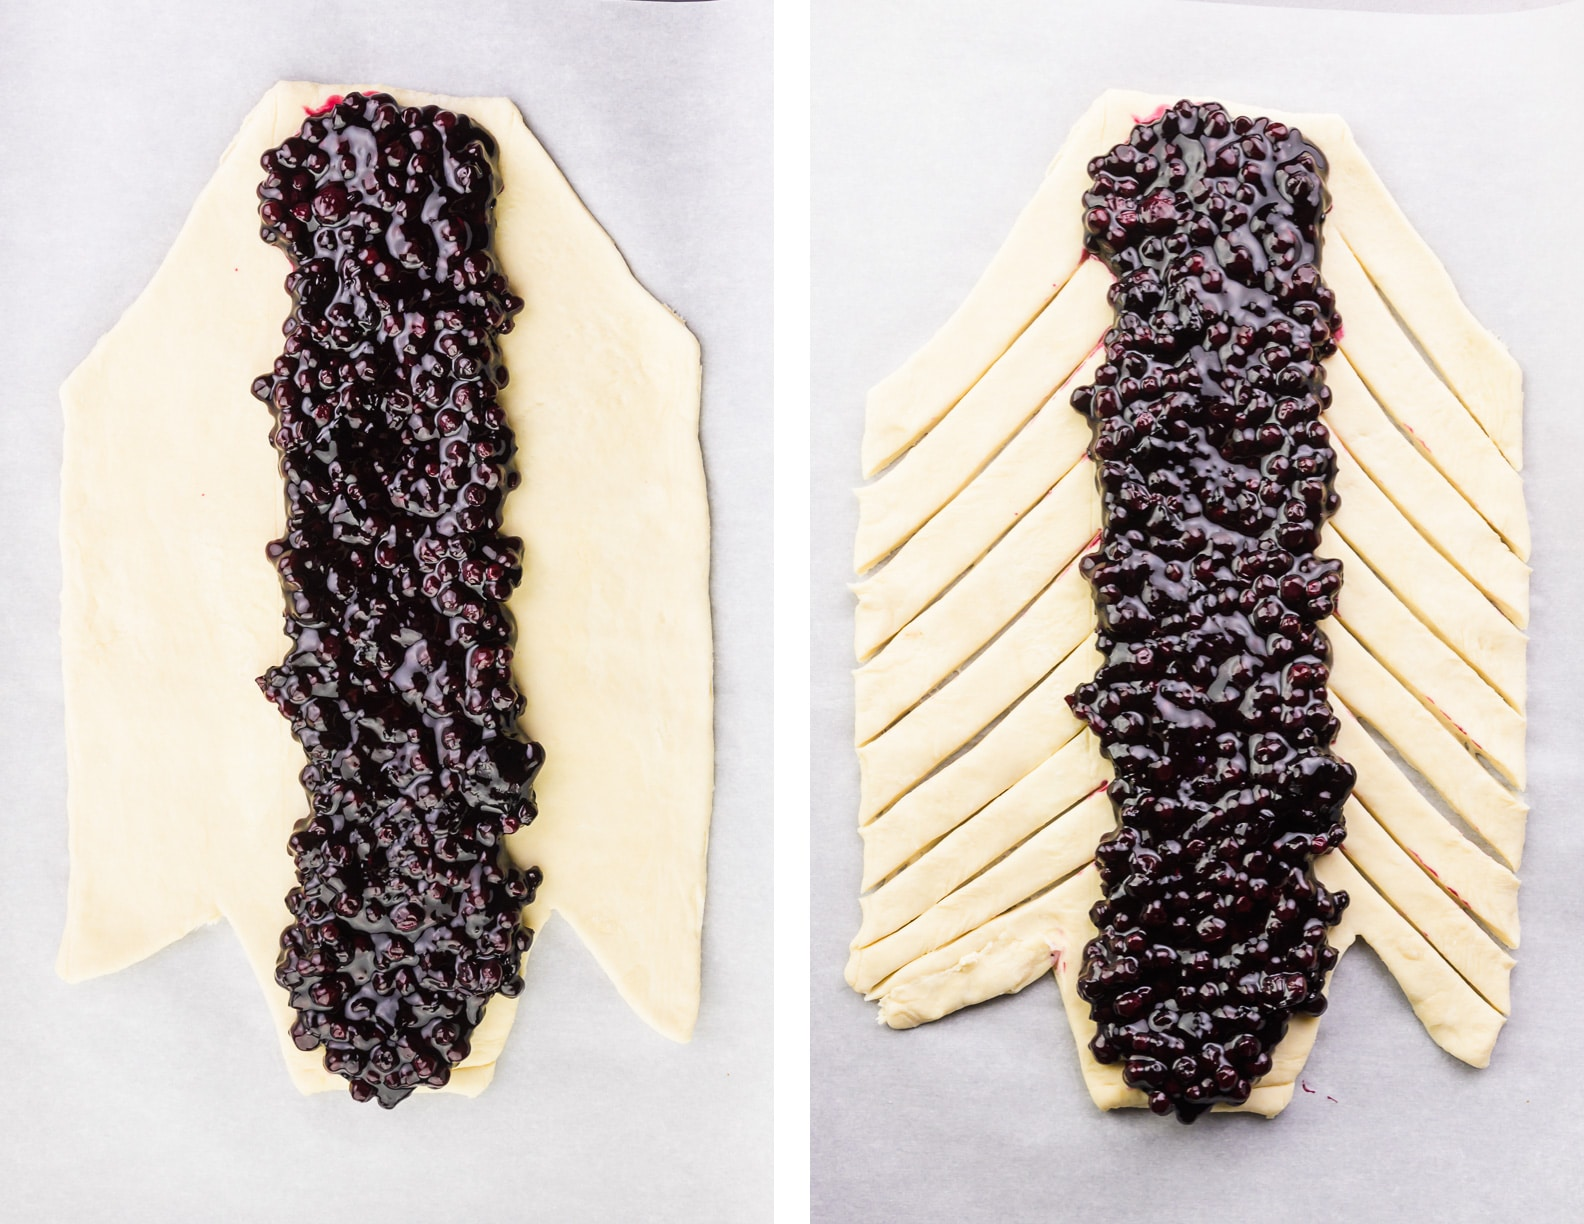 A collage of two images shows the dough cut with a thin strip of blueberry filling down the center on the left. The image on the right shows the same dough and filling, except thin strips have been cut out of the dough.